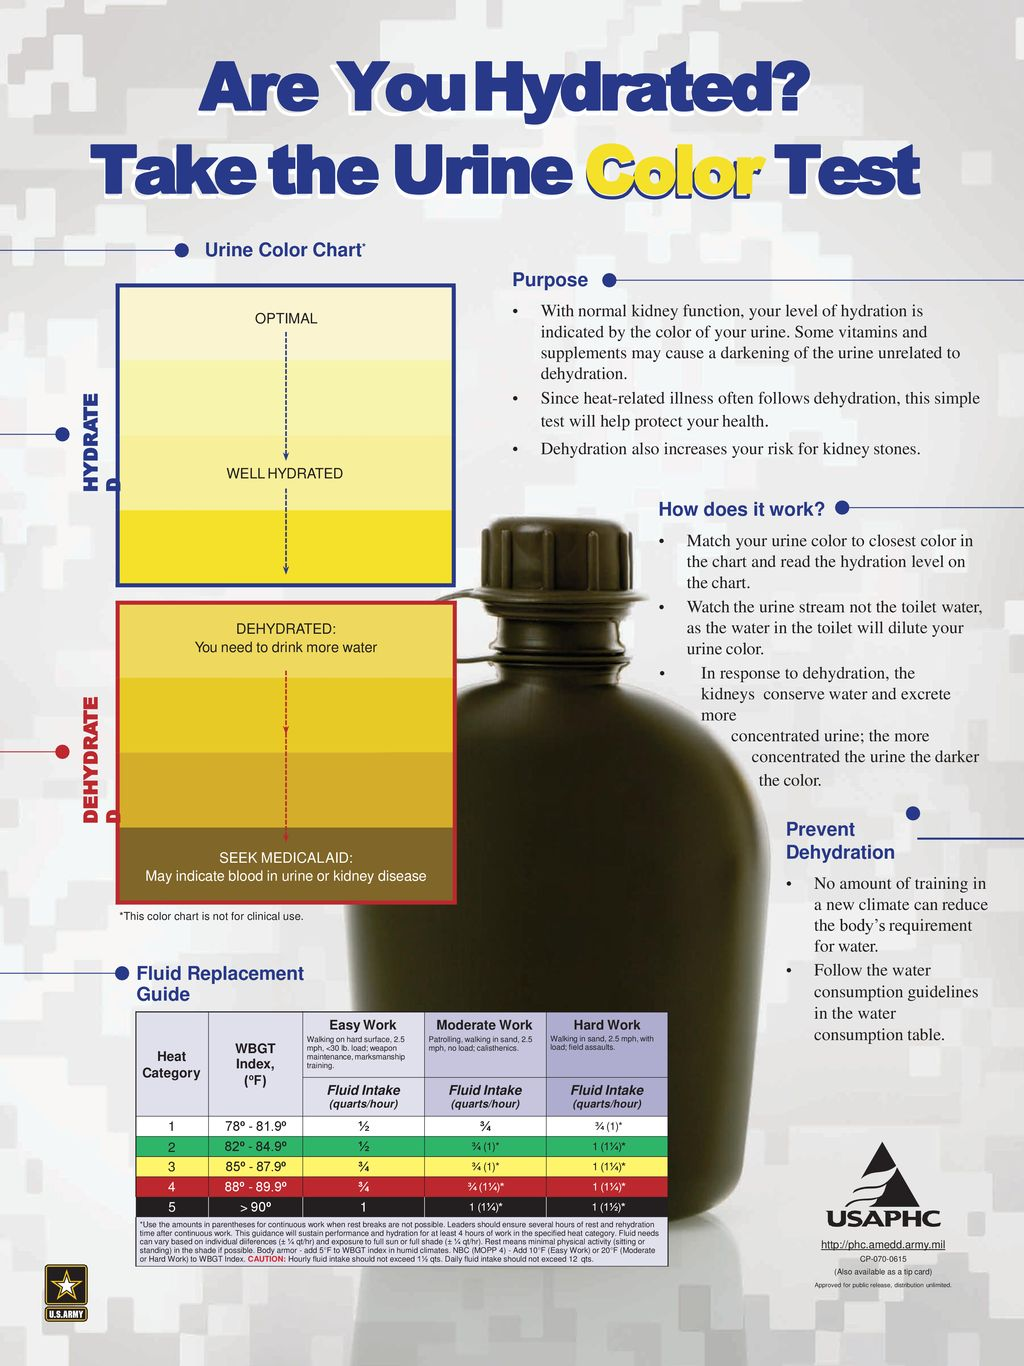 Are You Hydrated Take The Urine Color Test Ppt Download